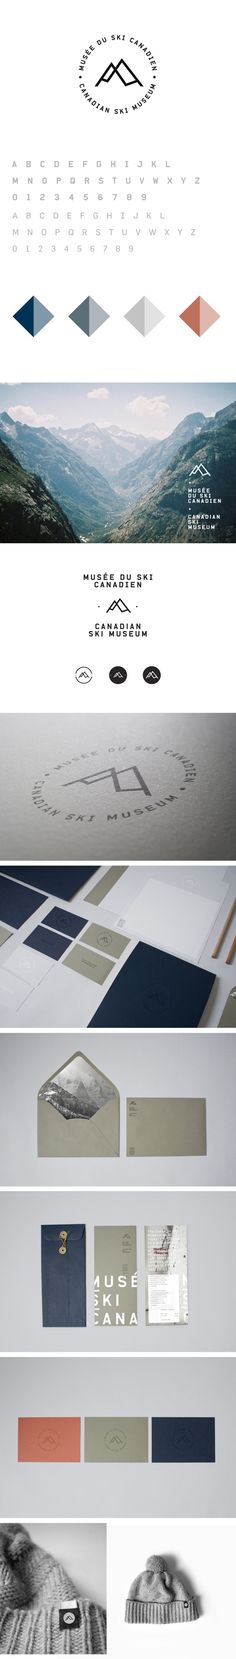 Musée du ski Canadien / Canadian Ski Museum by Eliane Cadieux. Great Branding, love it.